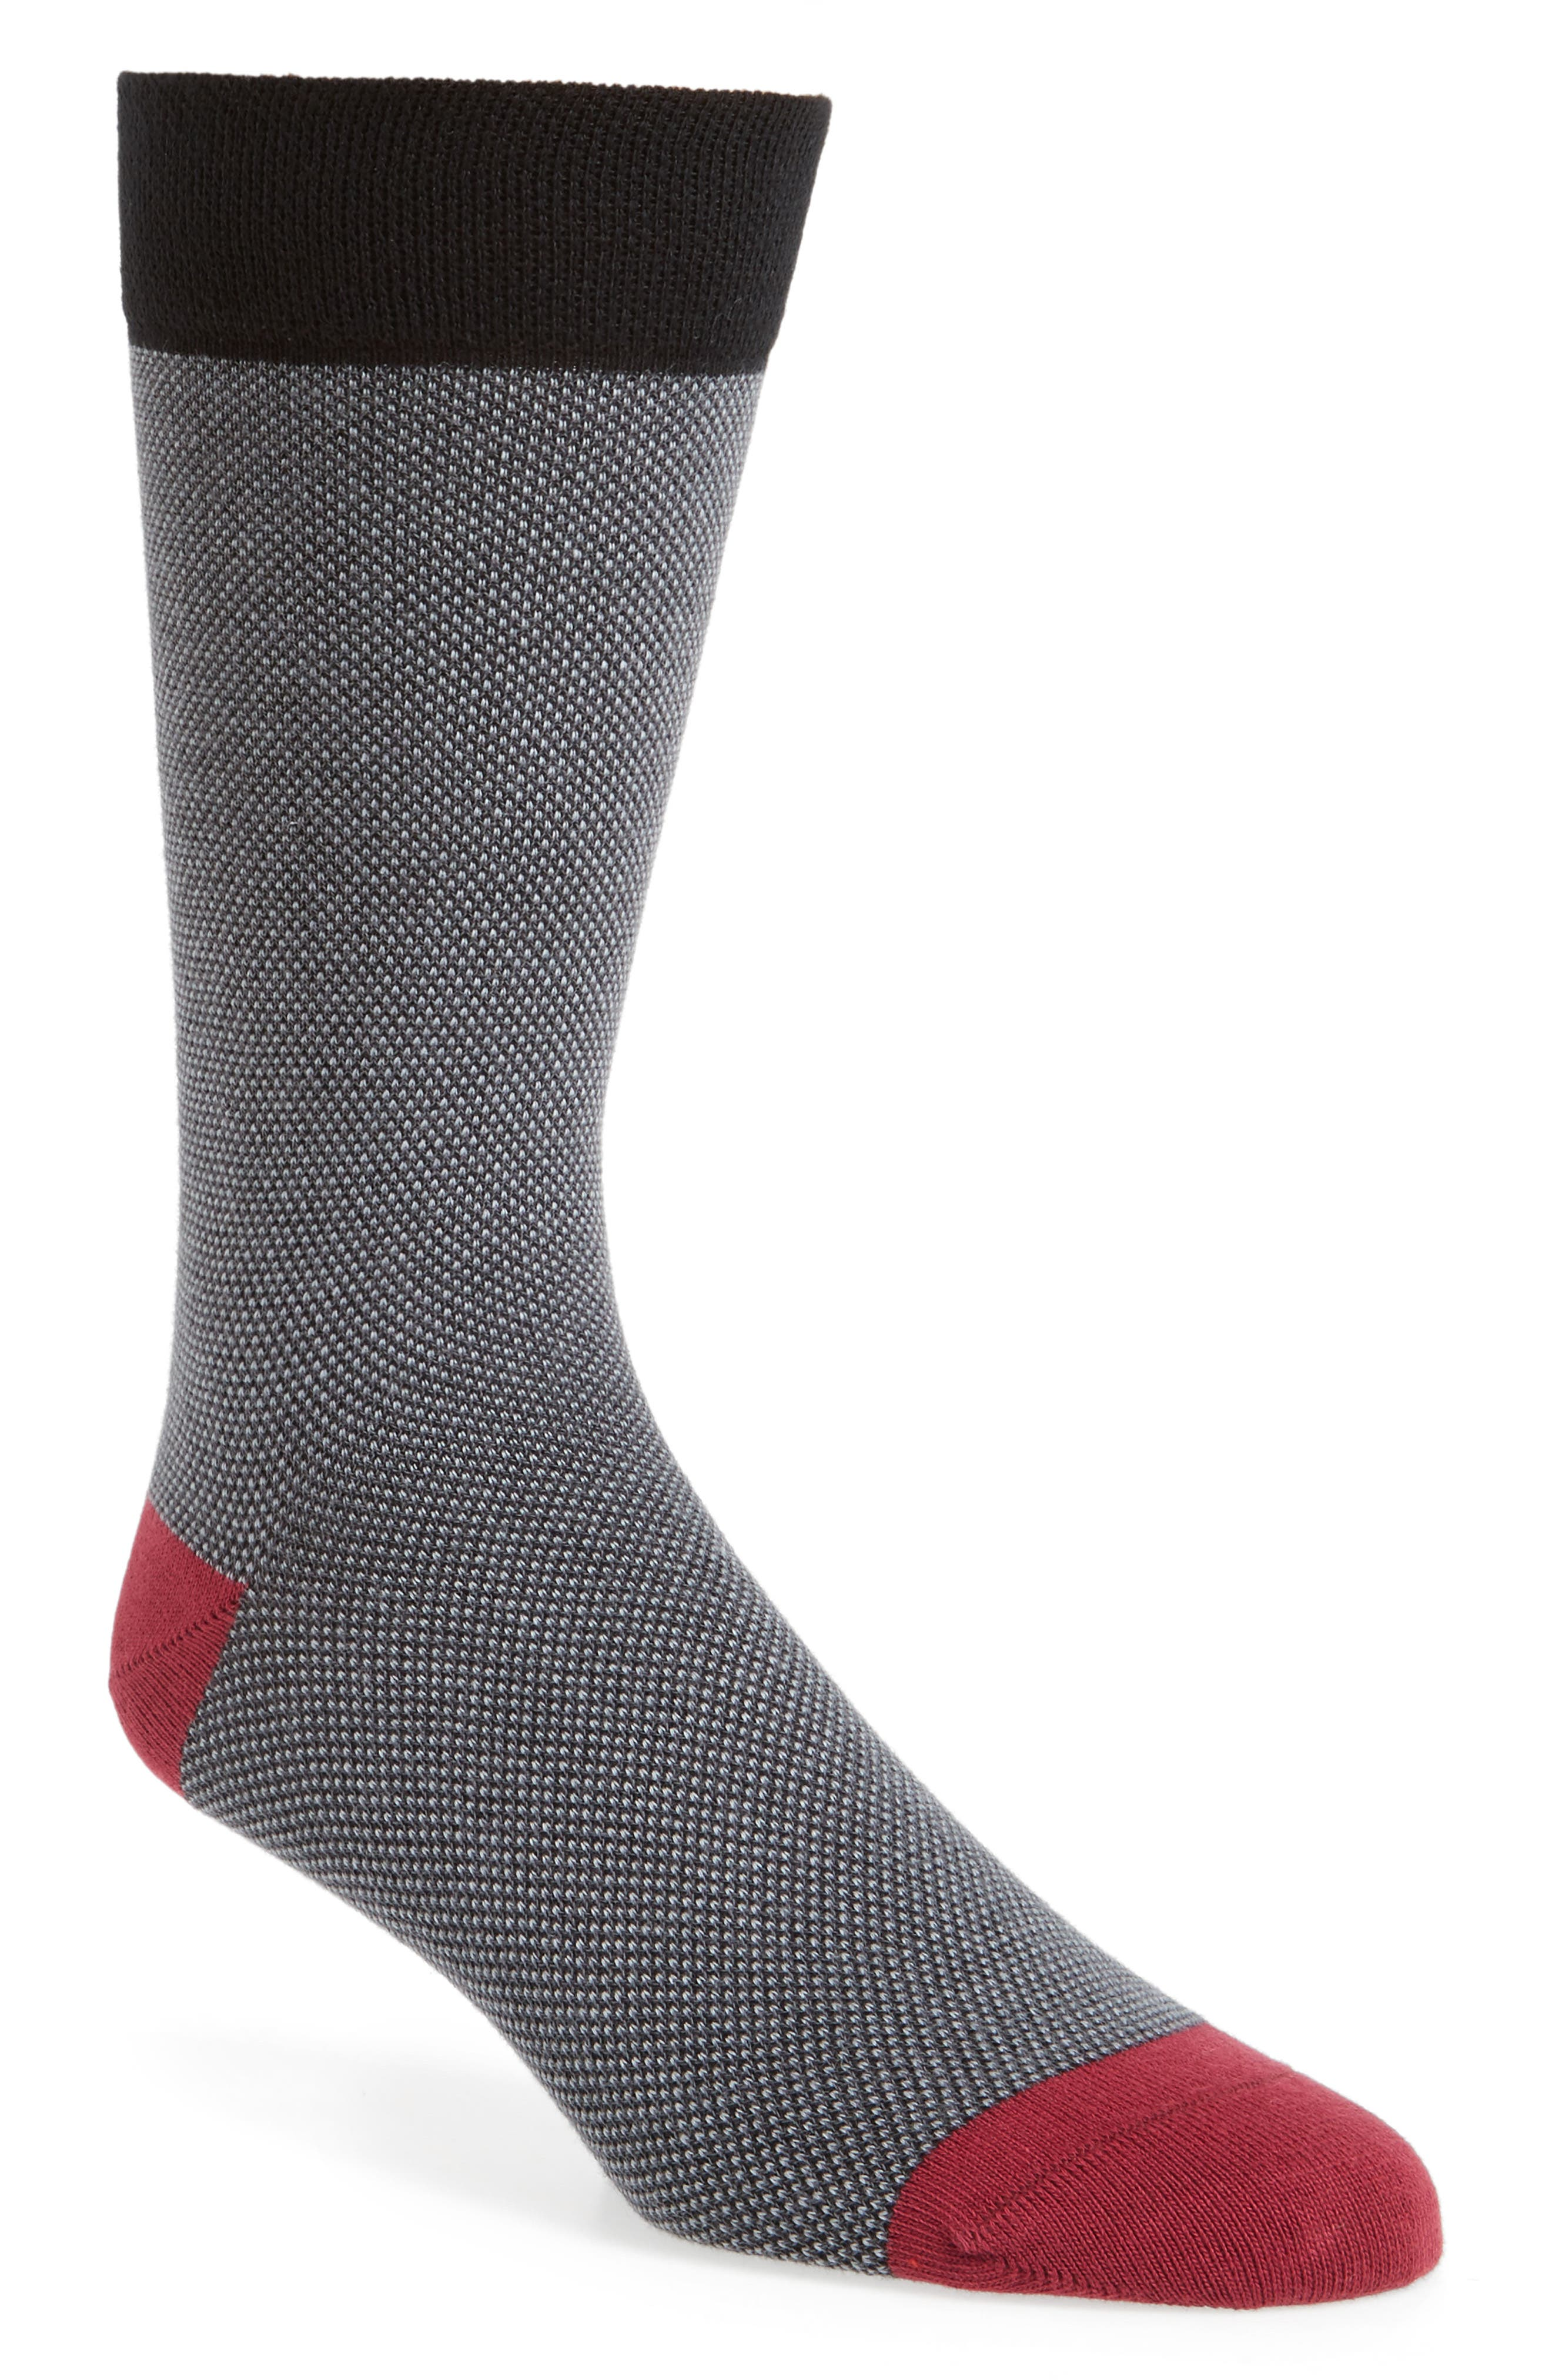 Joaquim Solid Socks,                         Main,                         color, BLACK/ CHARCOAL